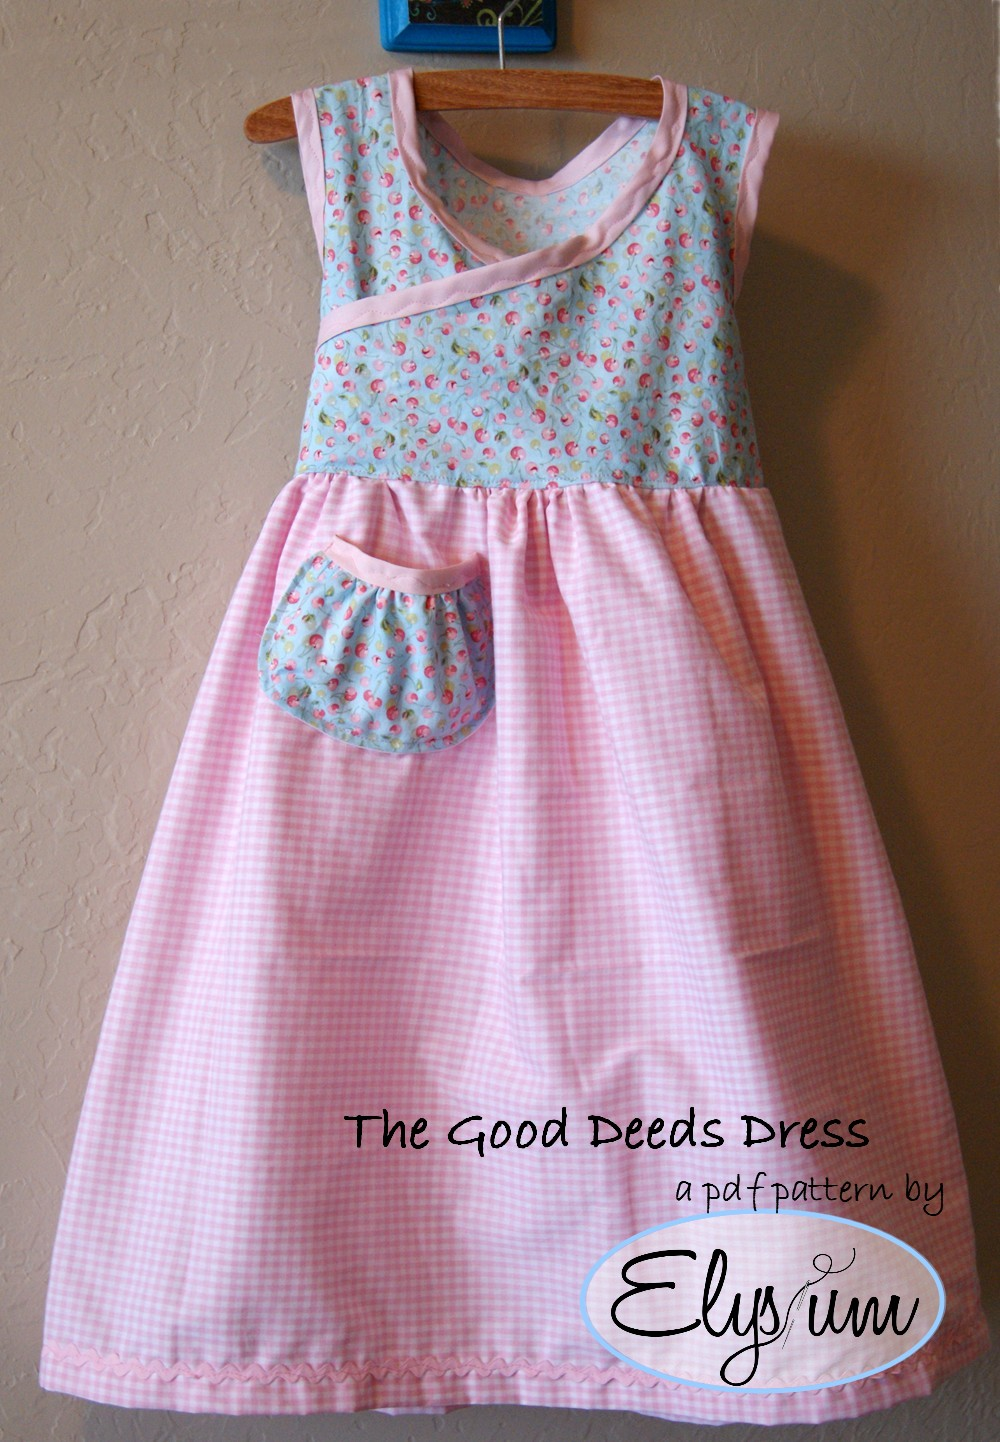 Night Owl's Menagerie: The Good Deeds Dress